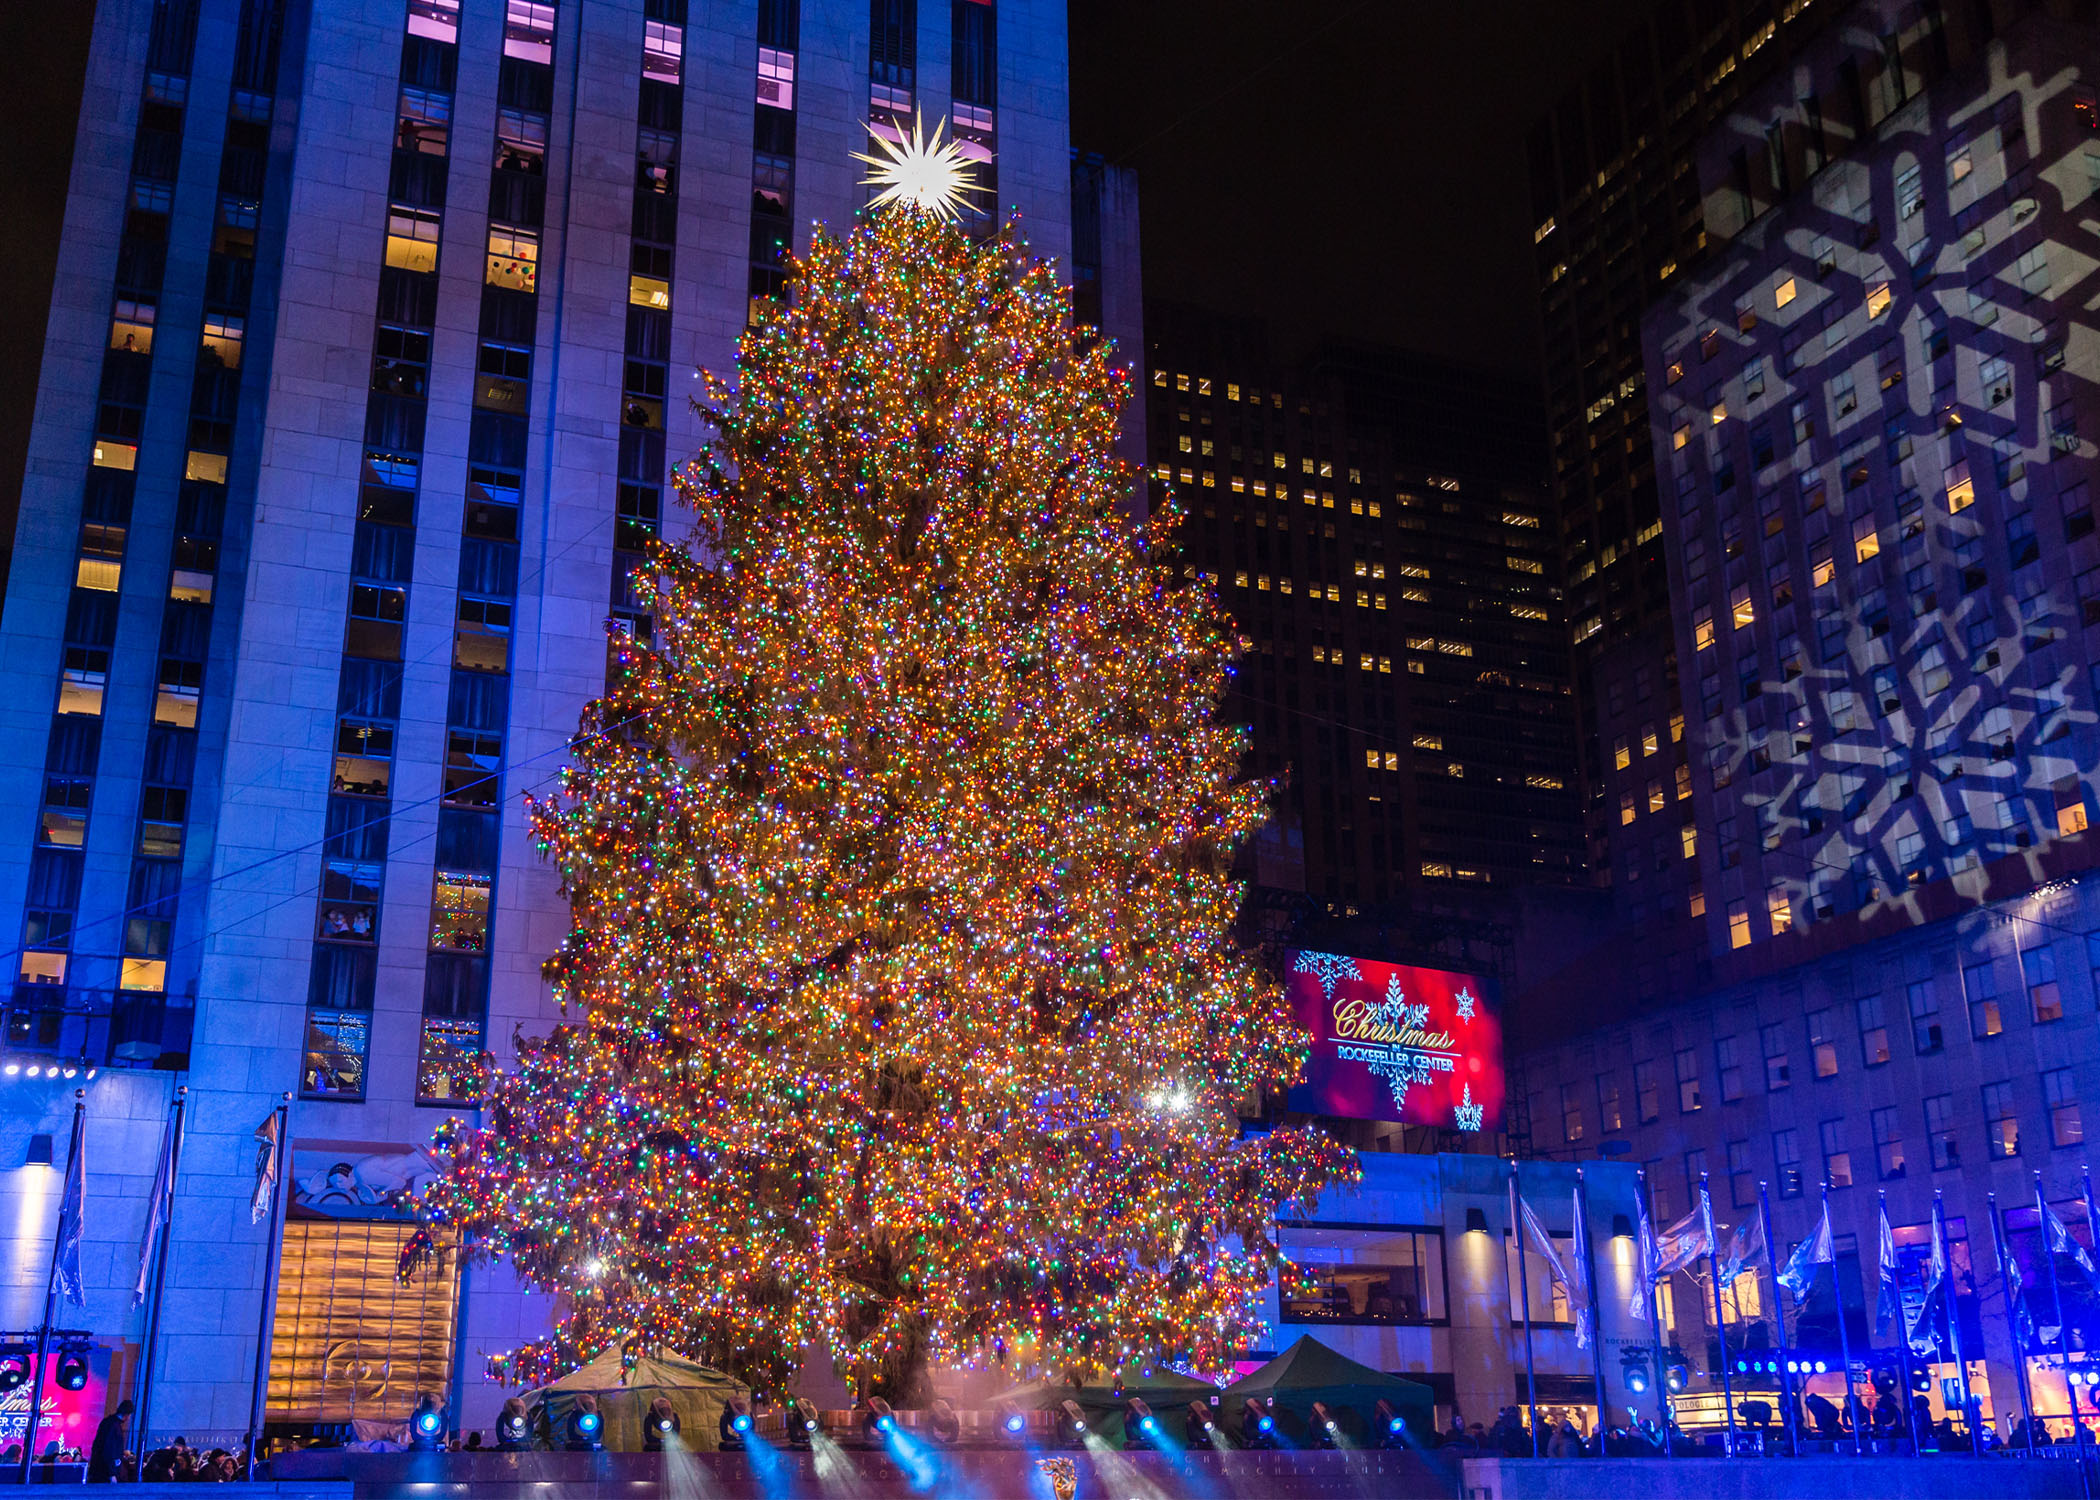 Rockefeller Plaza Christmas Tree 2020 Rockefeller Center Christmas tree to return, possibly without crowds